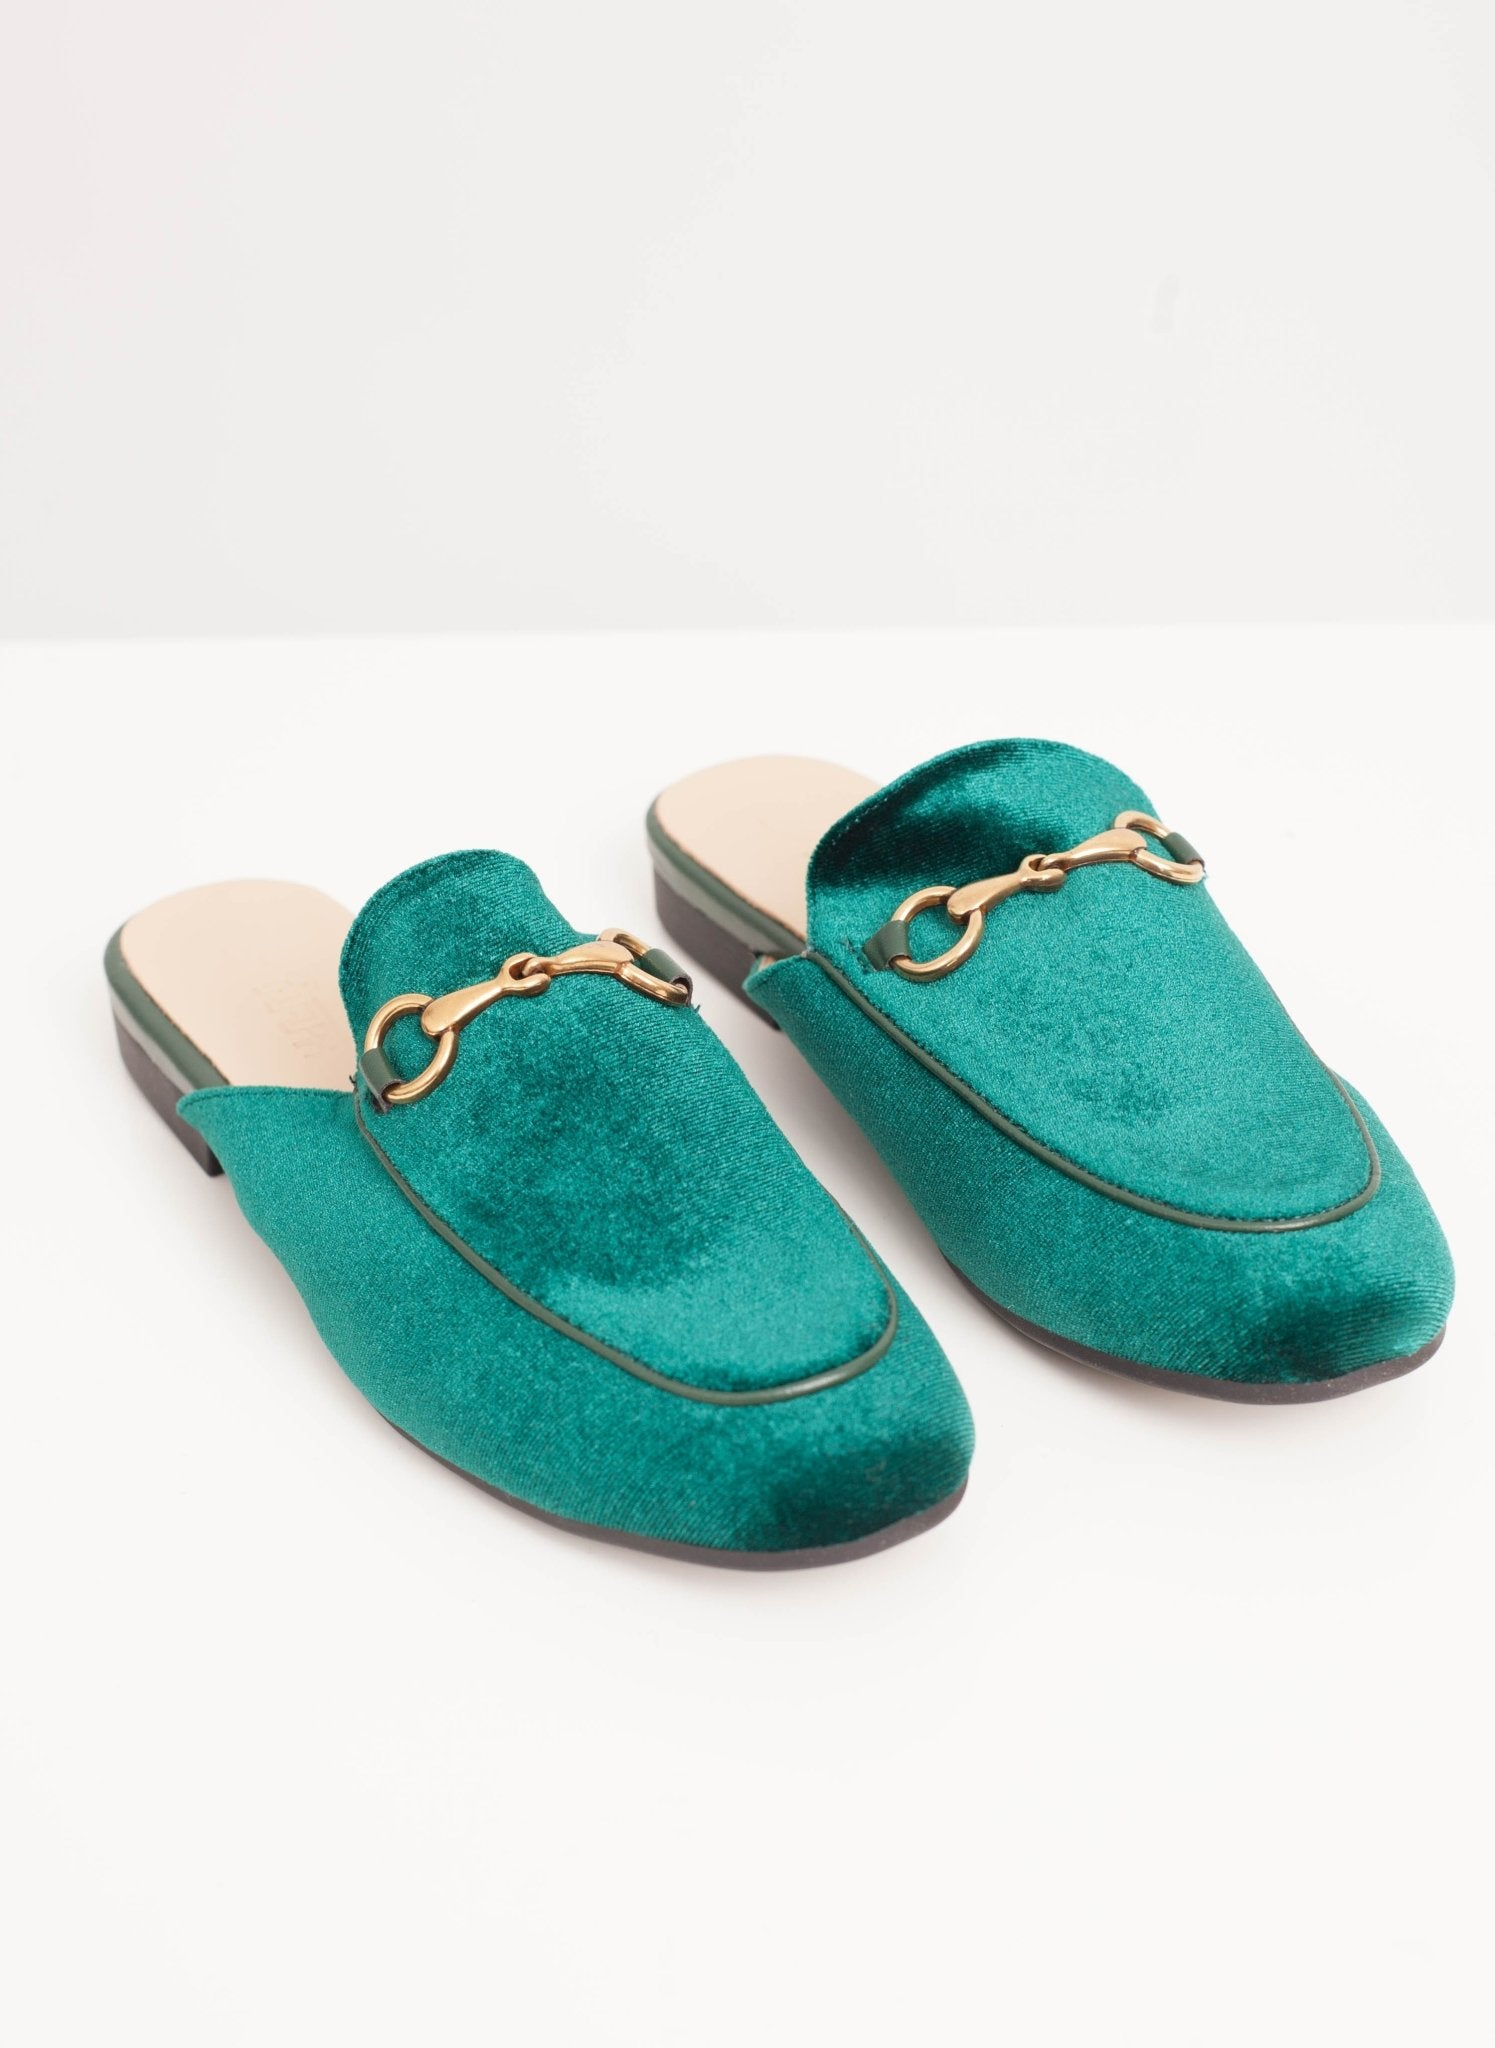 Rosie Mules In Green Velvet - The Walk in Wardrobe